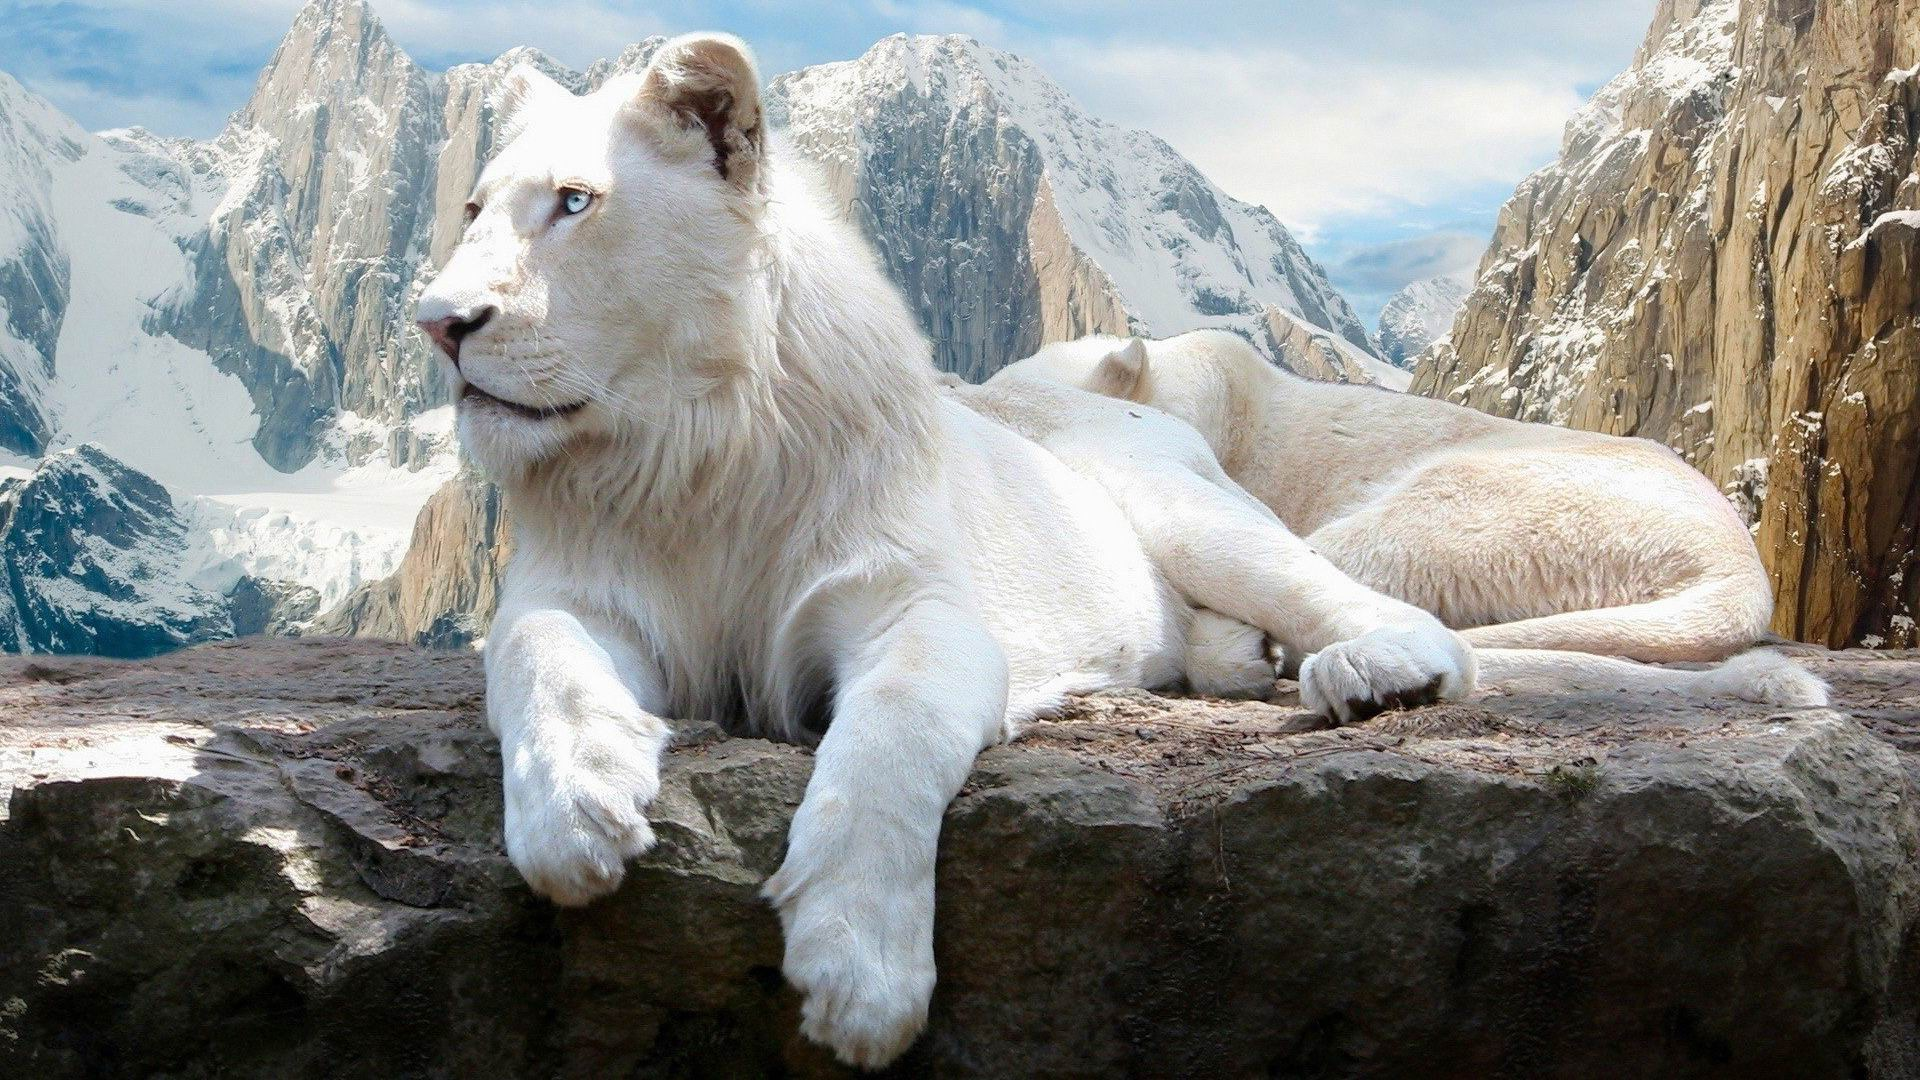 Lion Hd Wallpapers Backgrounds Wallpaper 1920 1080 Picture: 白いライオン-かわいい動物の壁紙プレビュー